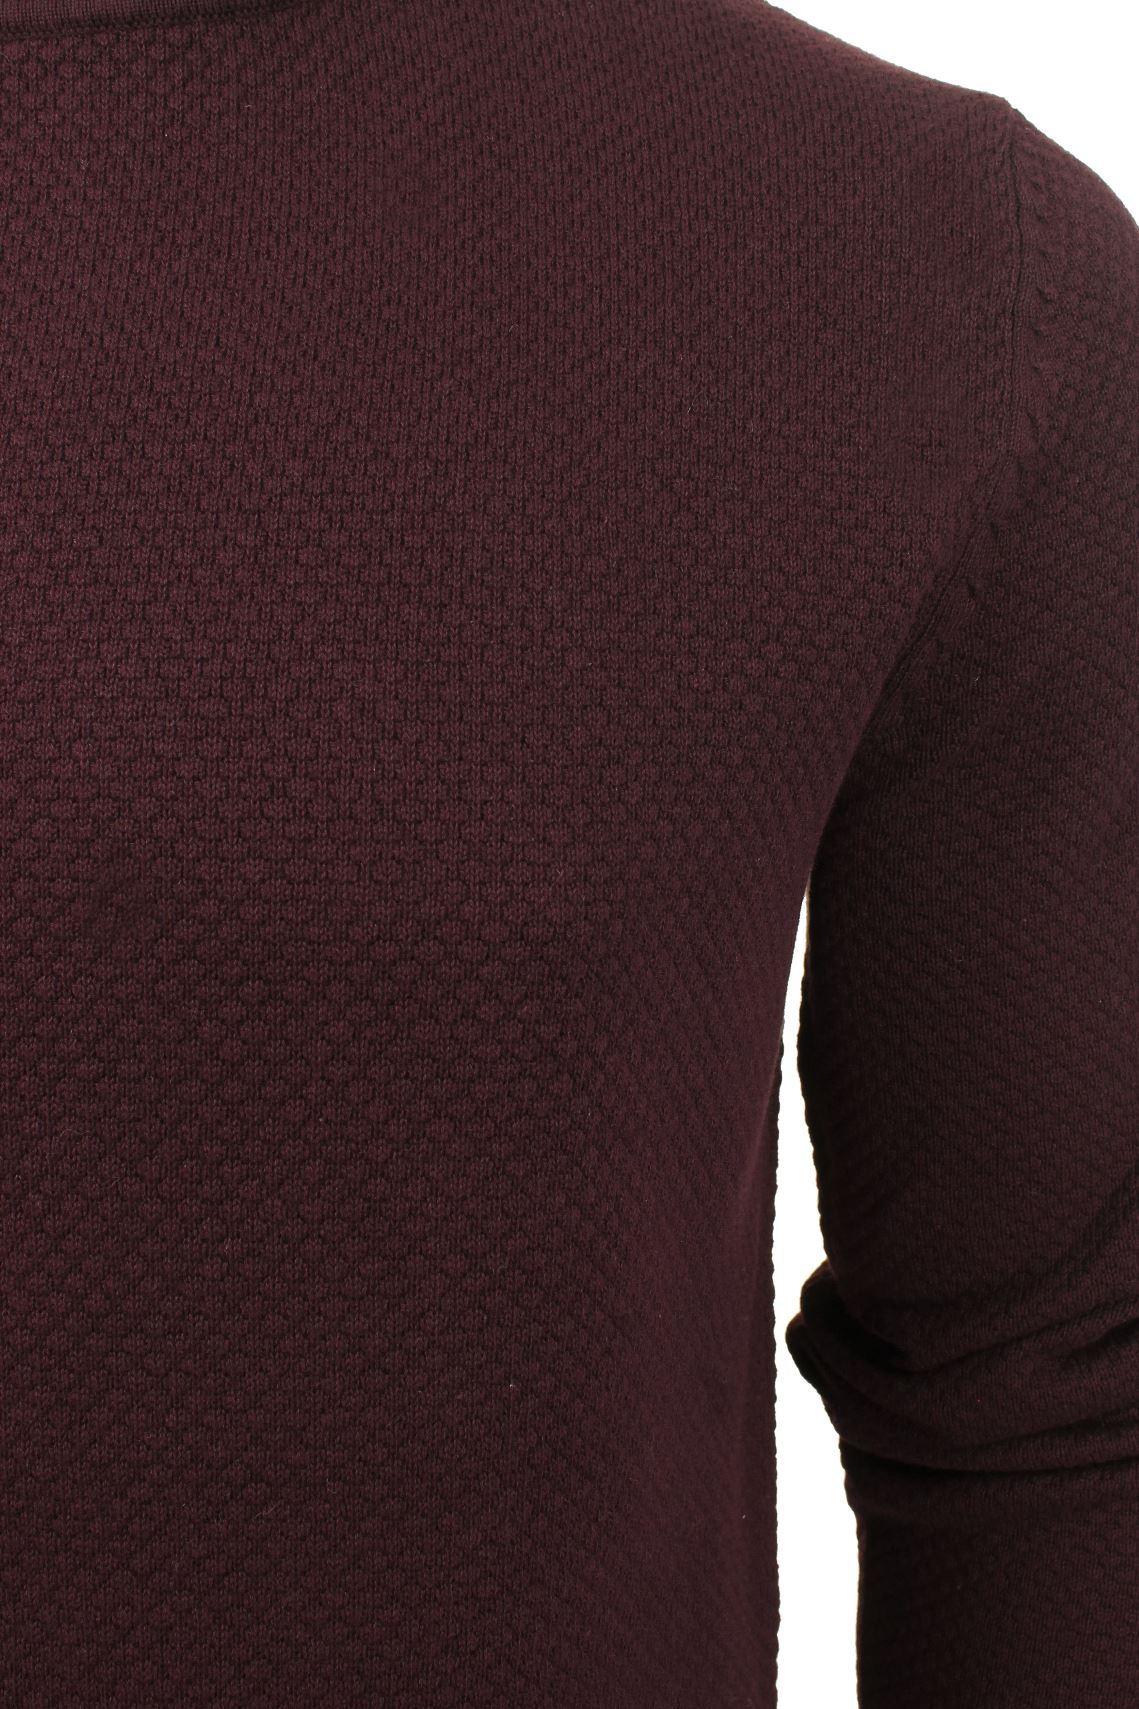 Xact Mens Crew Neck Cotton Jumper_02_XK1013_Merlot